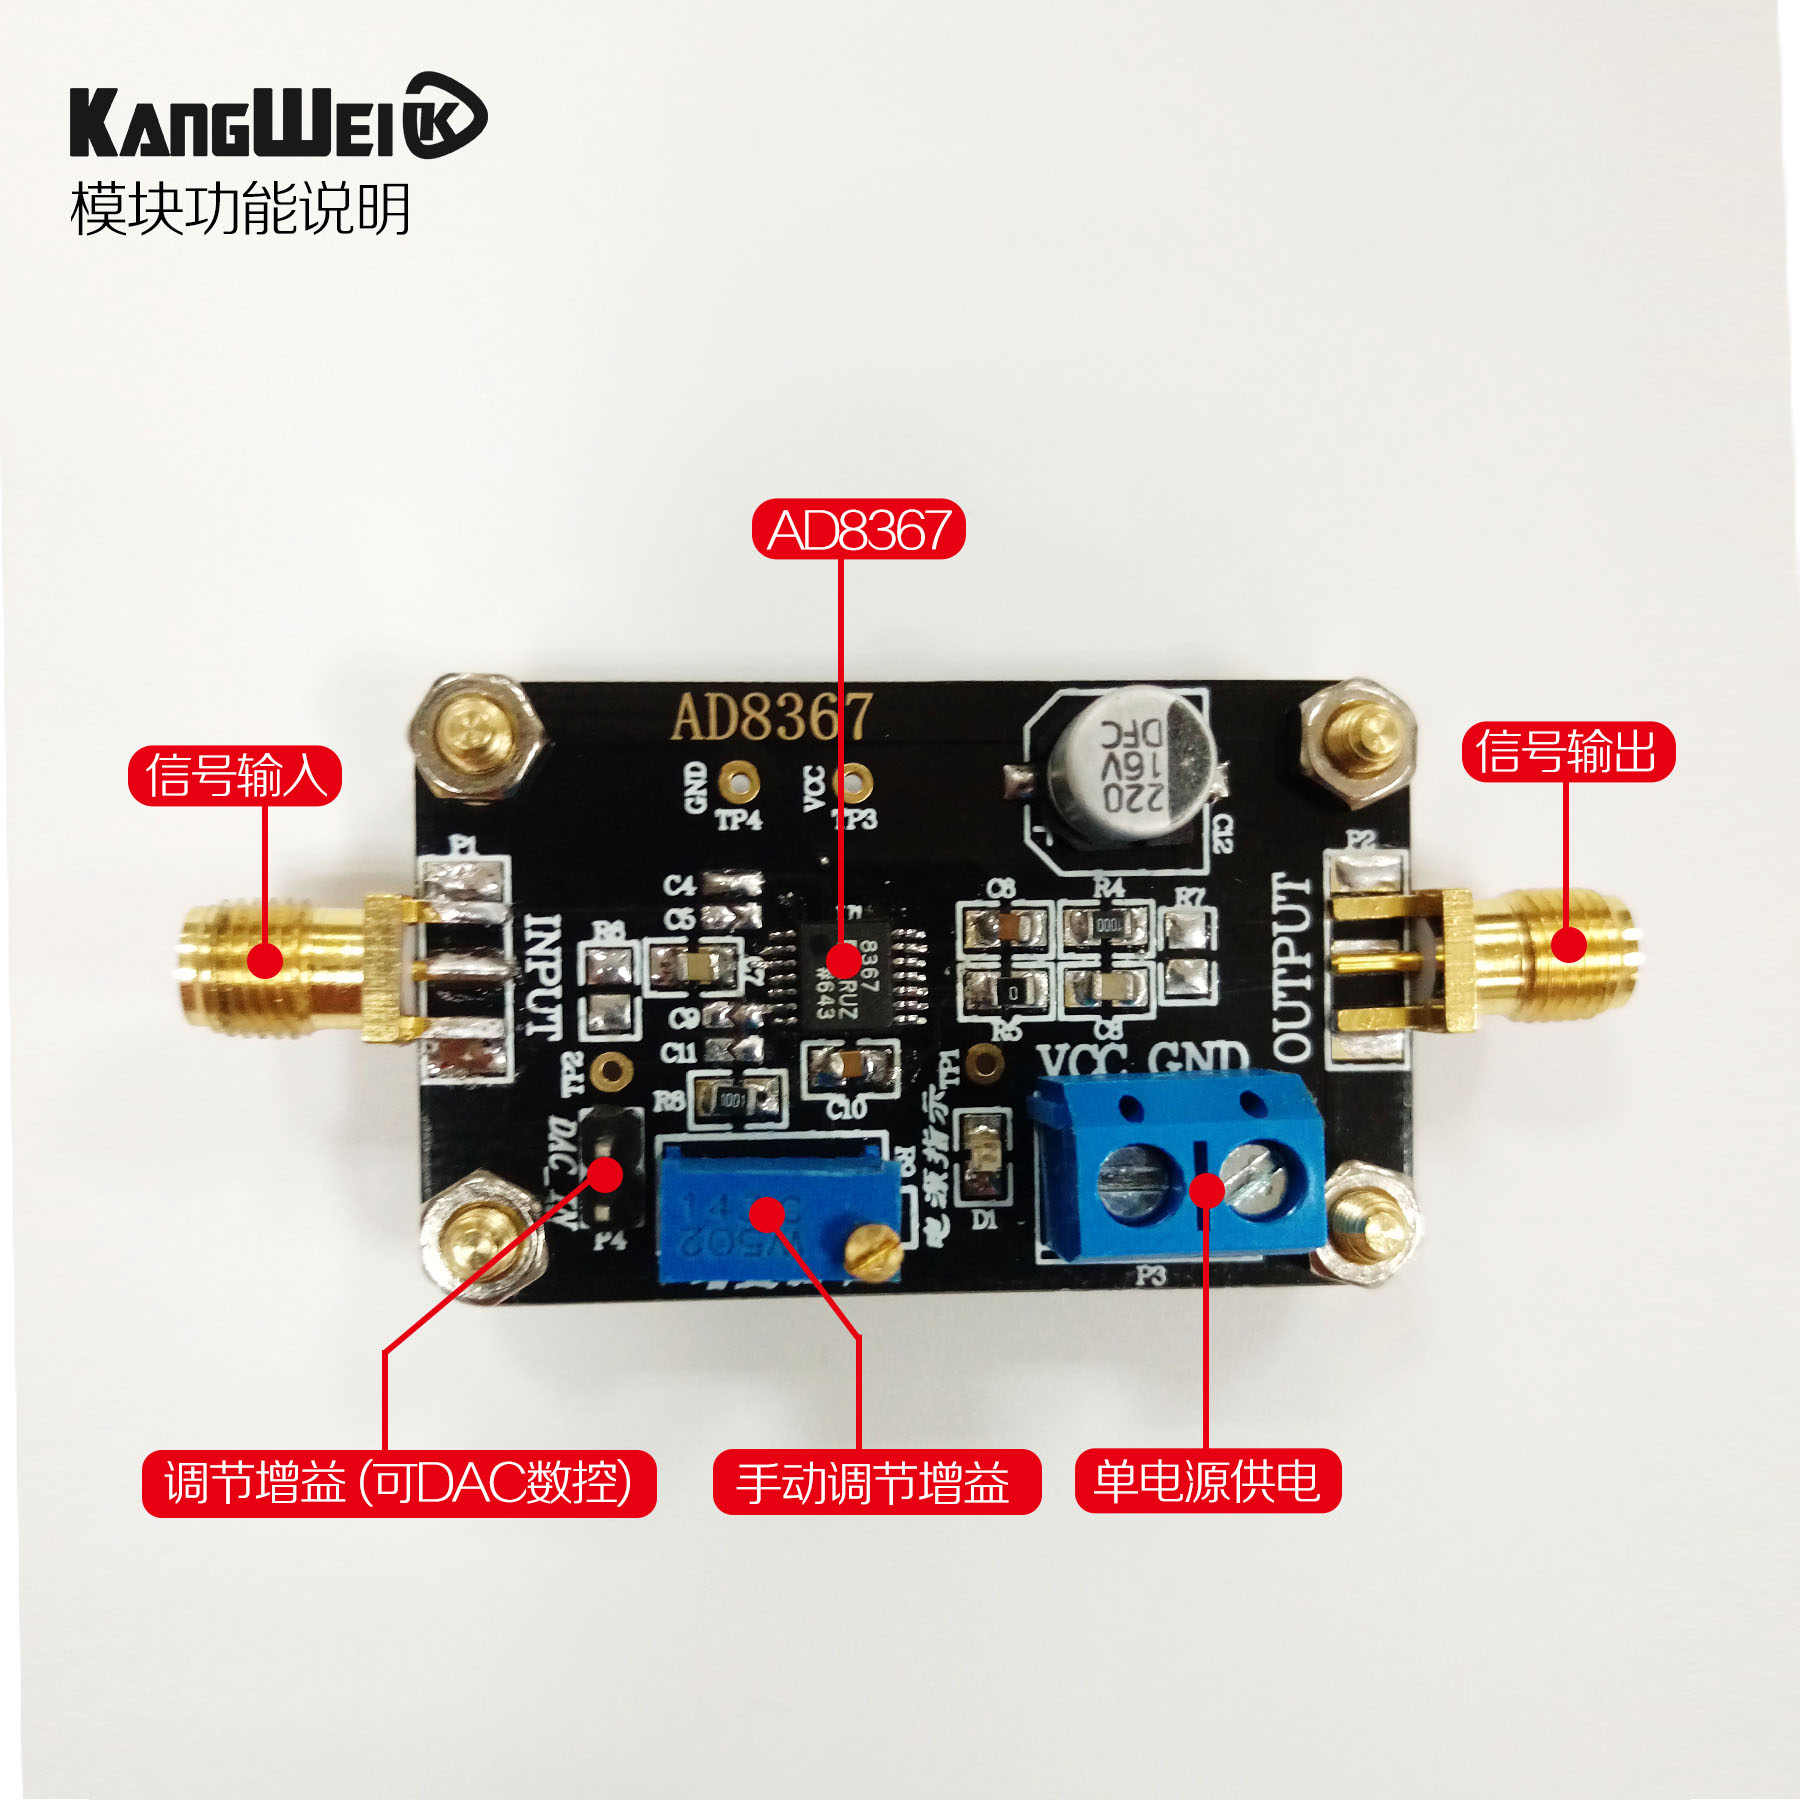 1 500mhz Ad8367 Rf Broadband Signal Amplifier Module 45db Linear Voltage Controlled Variable Gain